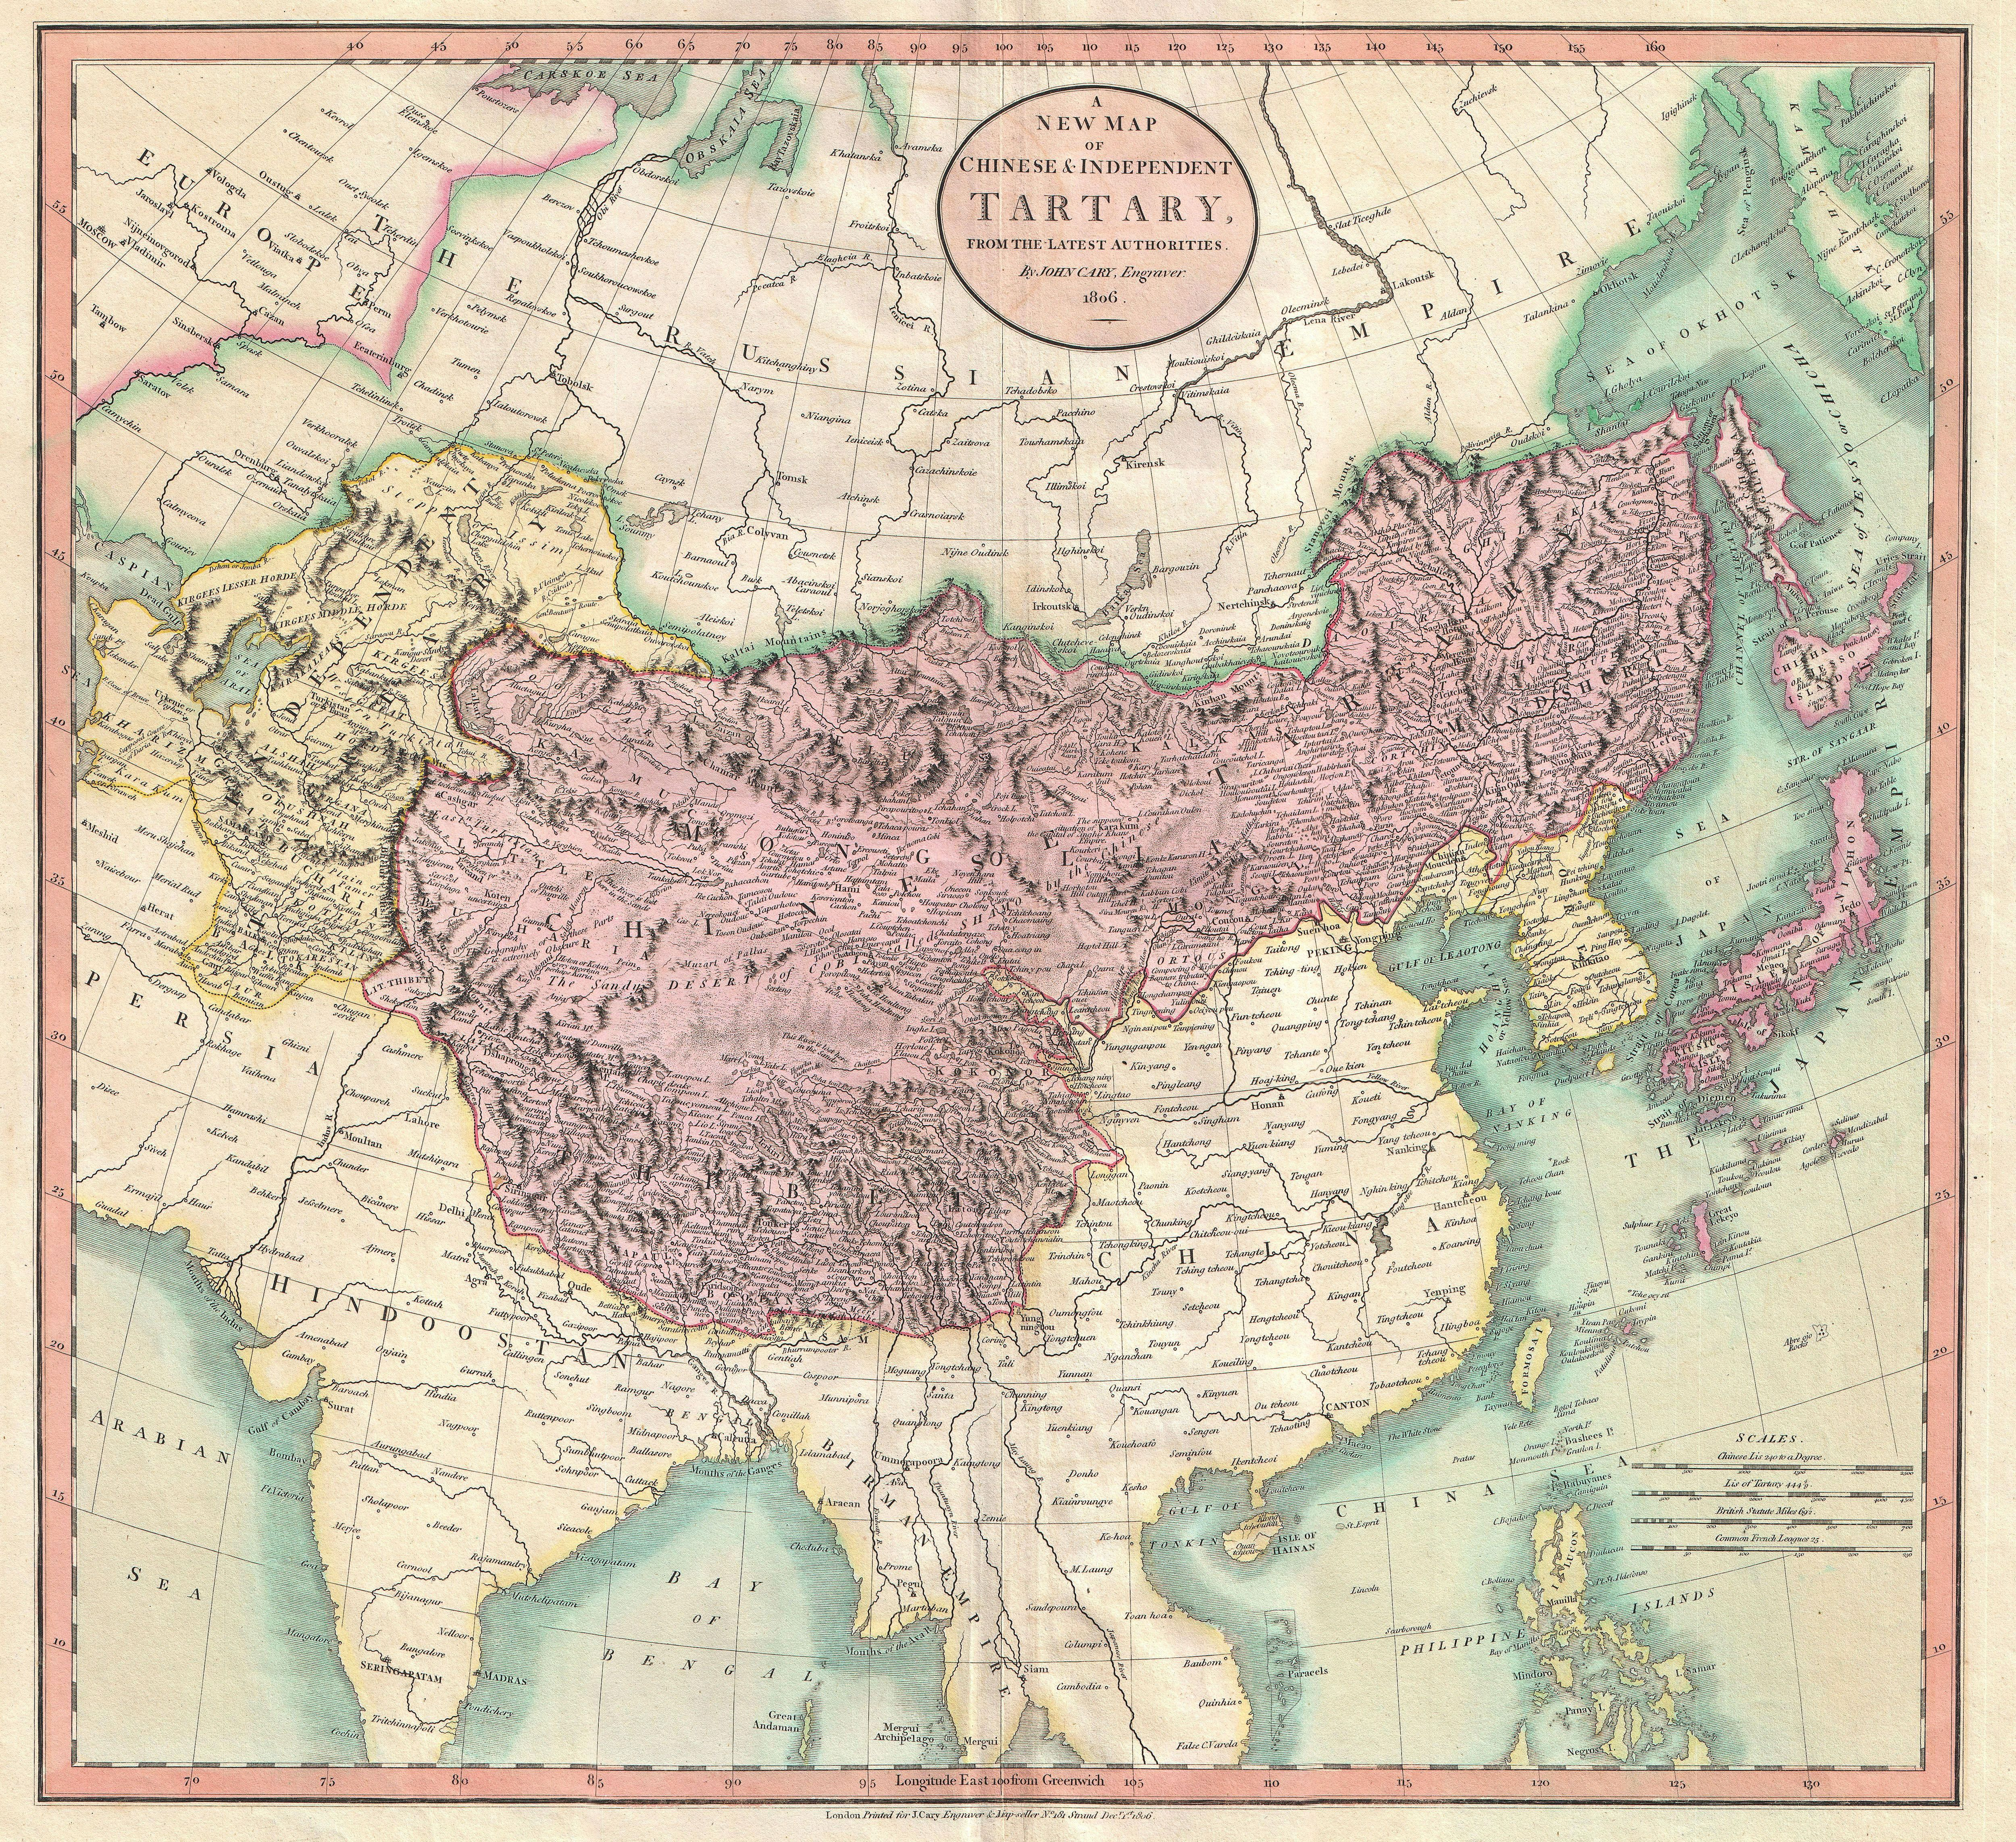 19 google keress retro pinterest a new map of chinese independent tartary by john cary gumiabroncs Gallery